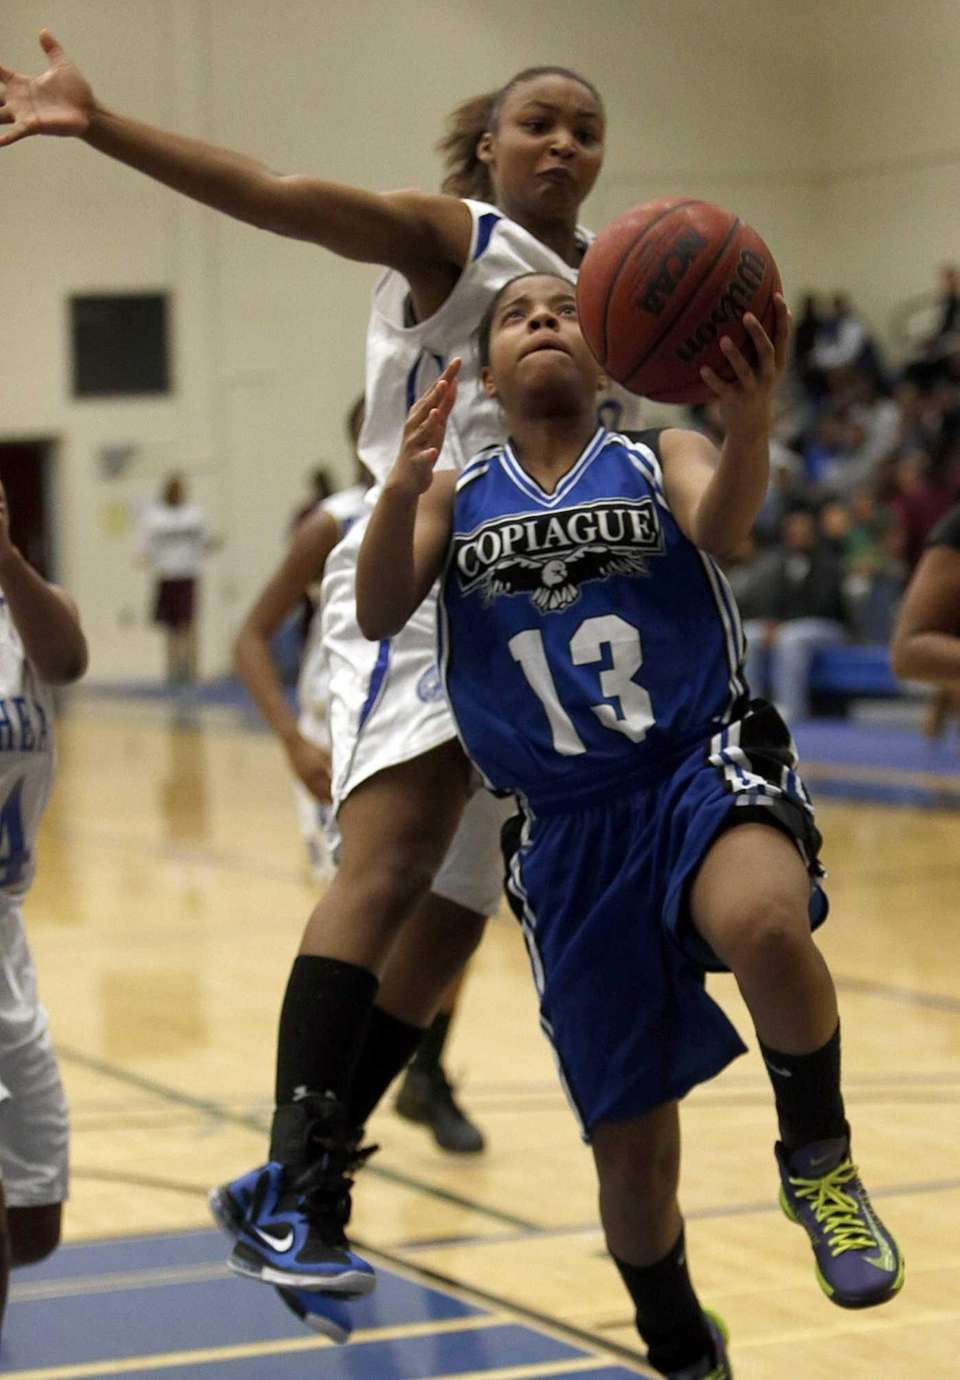 Copiague's Ihnacince Grady drives to the hoop with